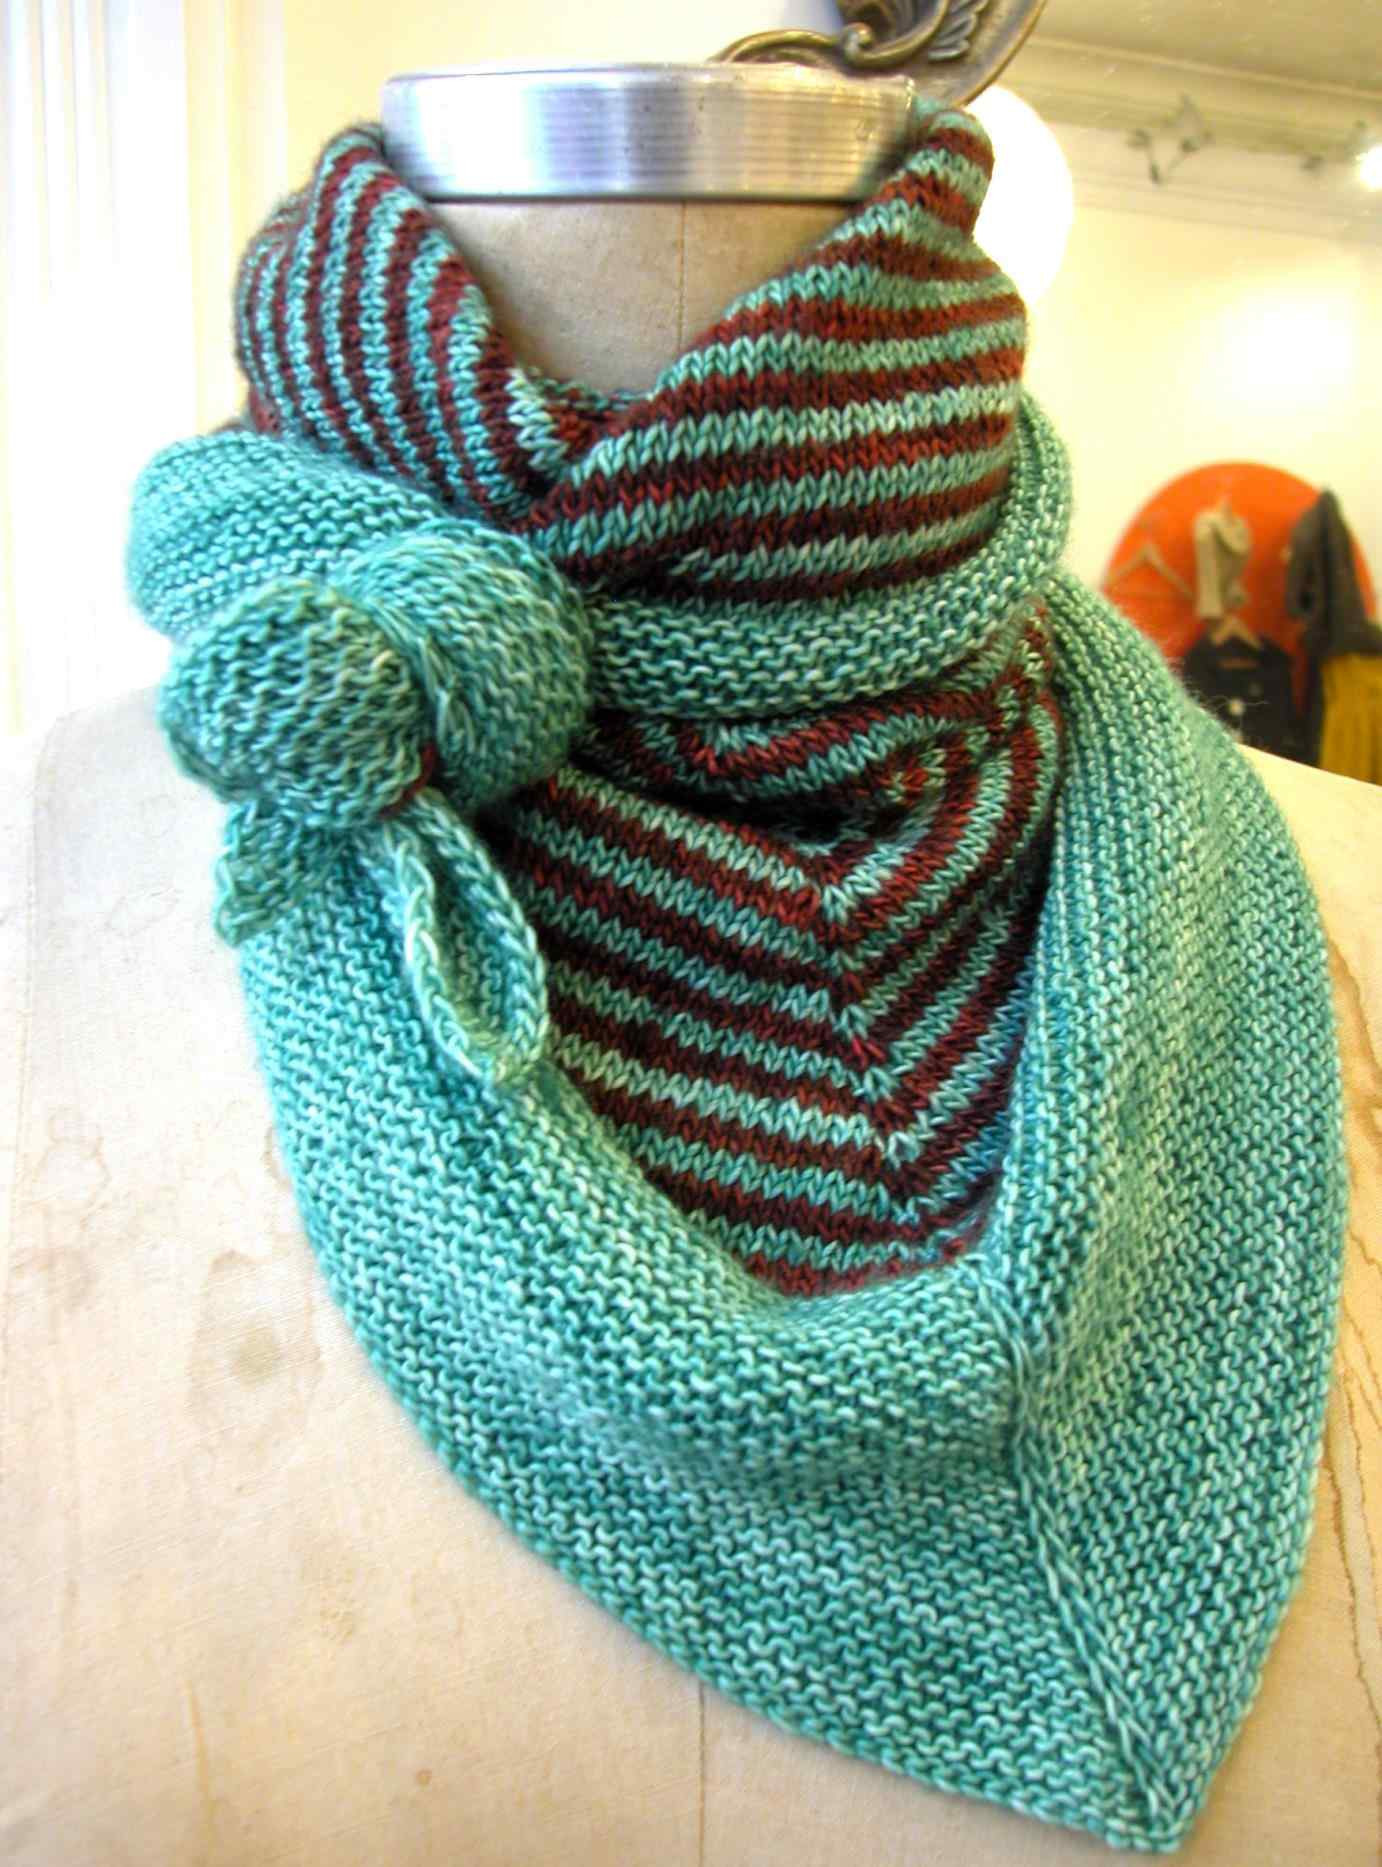 Free Scarf Knitting Patterns Awesome 7 Triangle Scarf Knitting Patterns the Funky Stitch Of Innovative 40 Pics Free Scarf Knitting Patterns